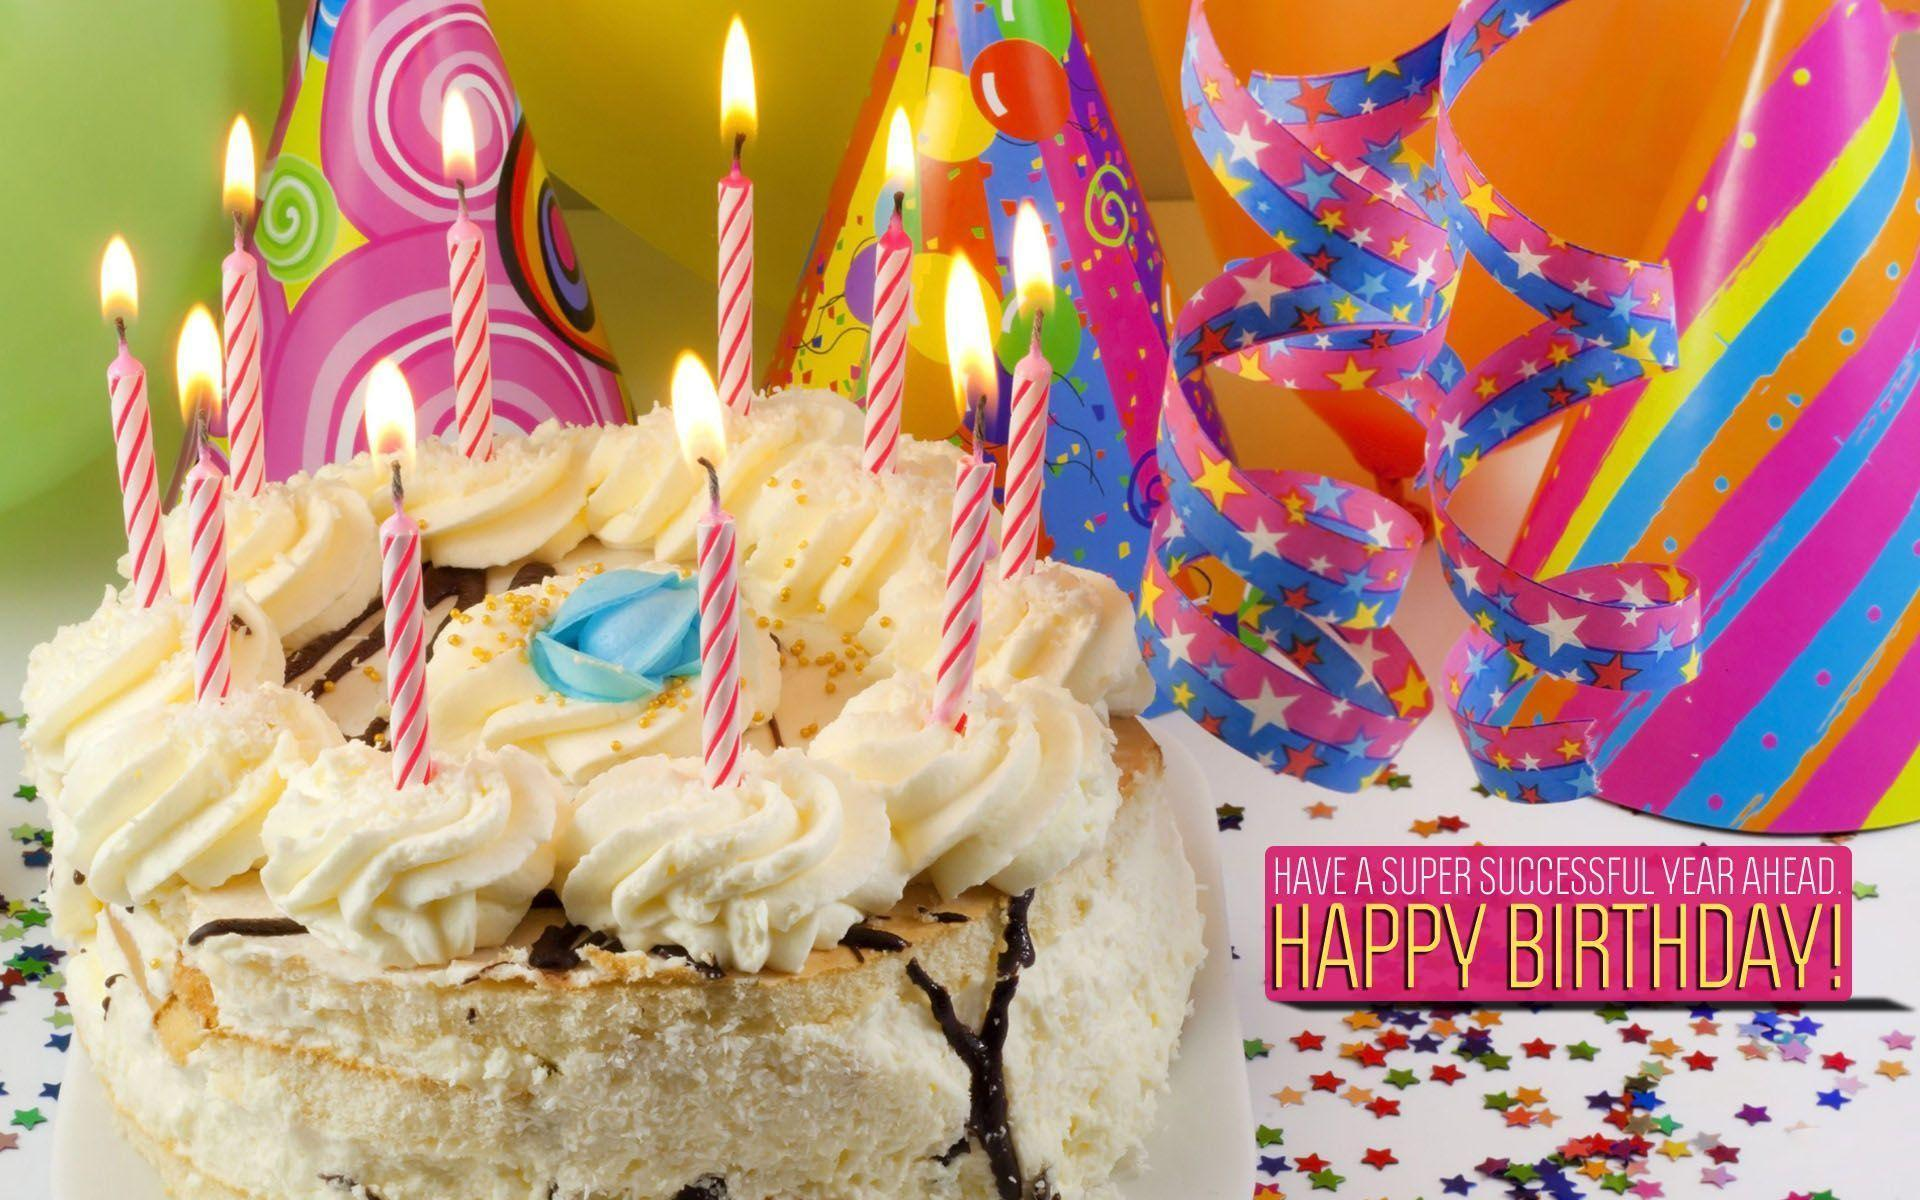 Widescreen Happy Birthday For Wallpaper, HQ Backgrounds | HD ...